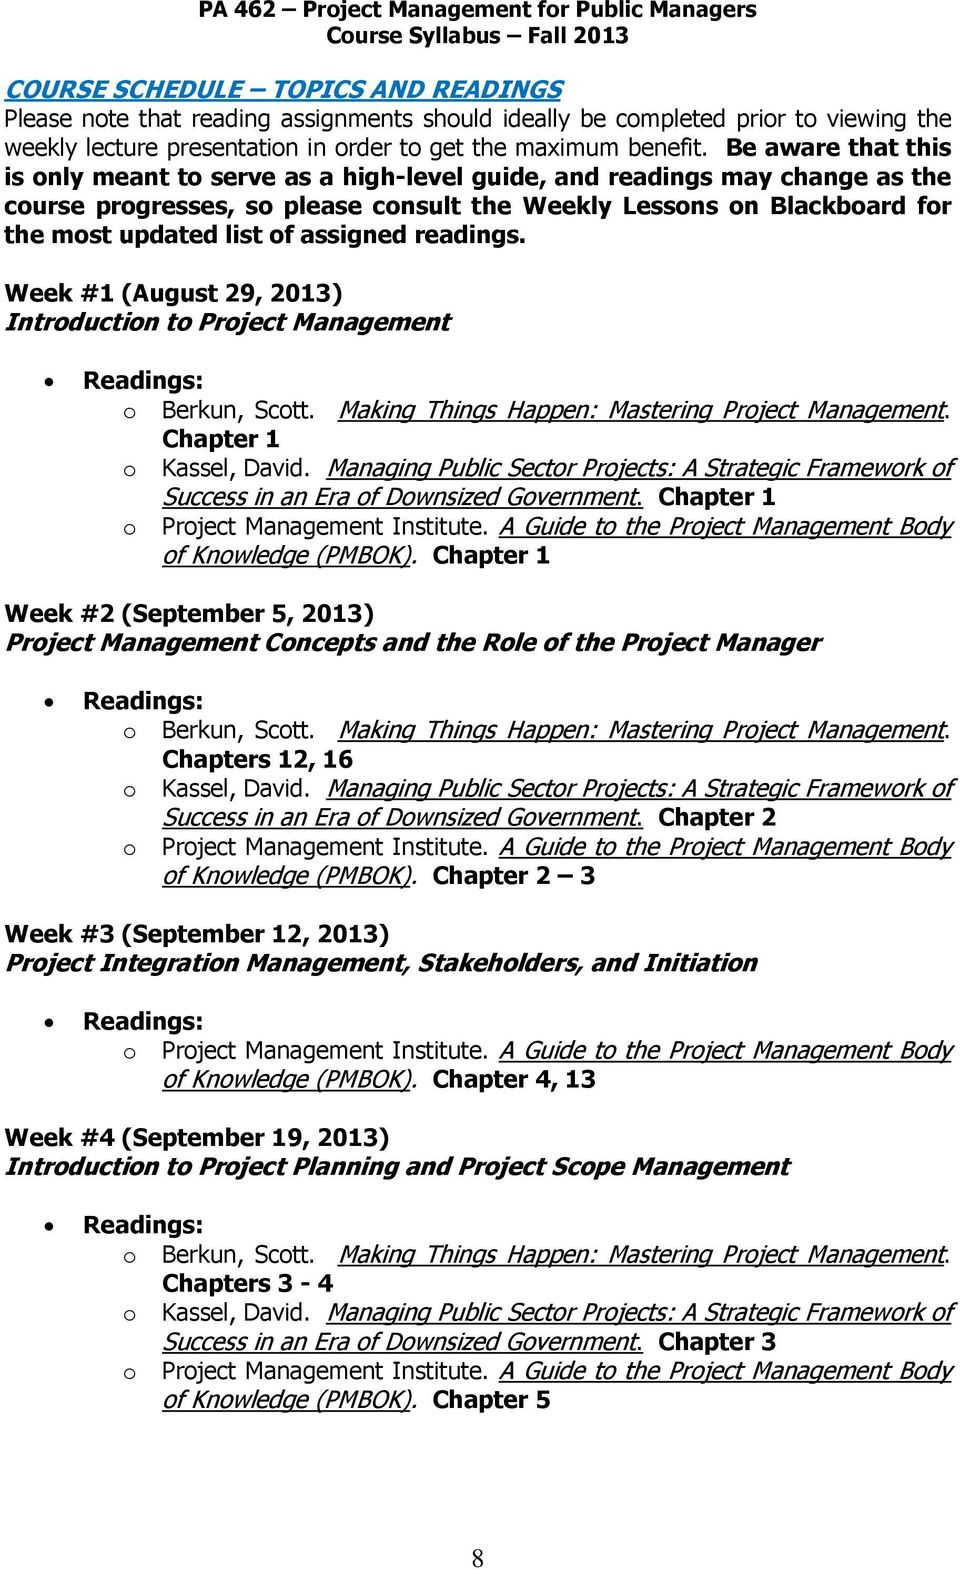 assigned readings. Week #1 (August 29, 2013) Introduction to Project Management Chapter 1 Success in an Era of Downsized Government. Chapter 1 of Knowledge (PMBOK).